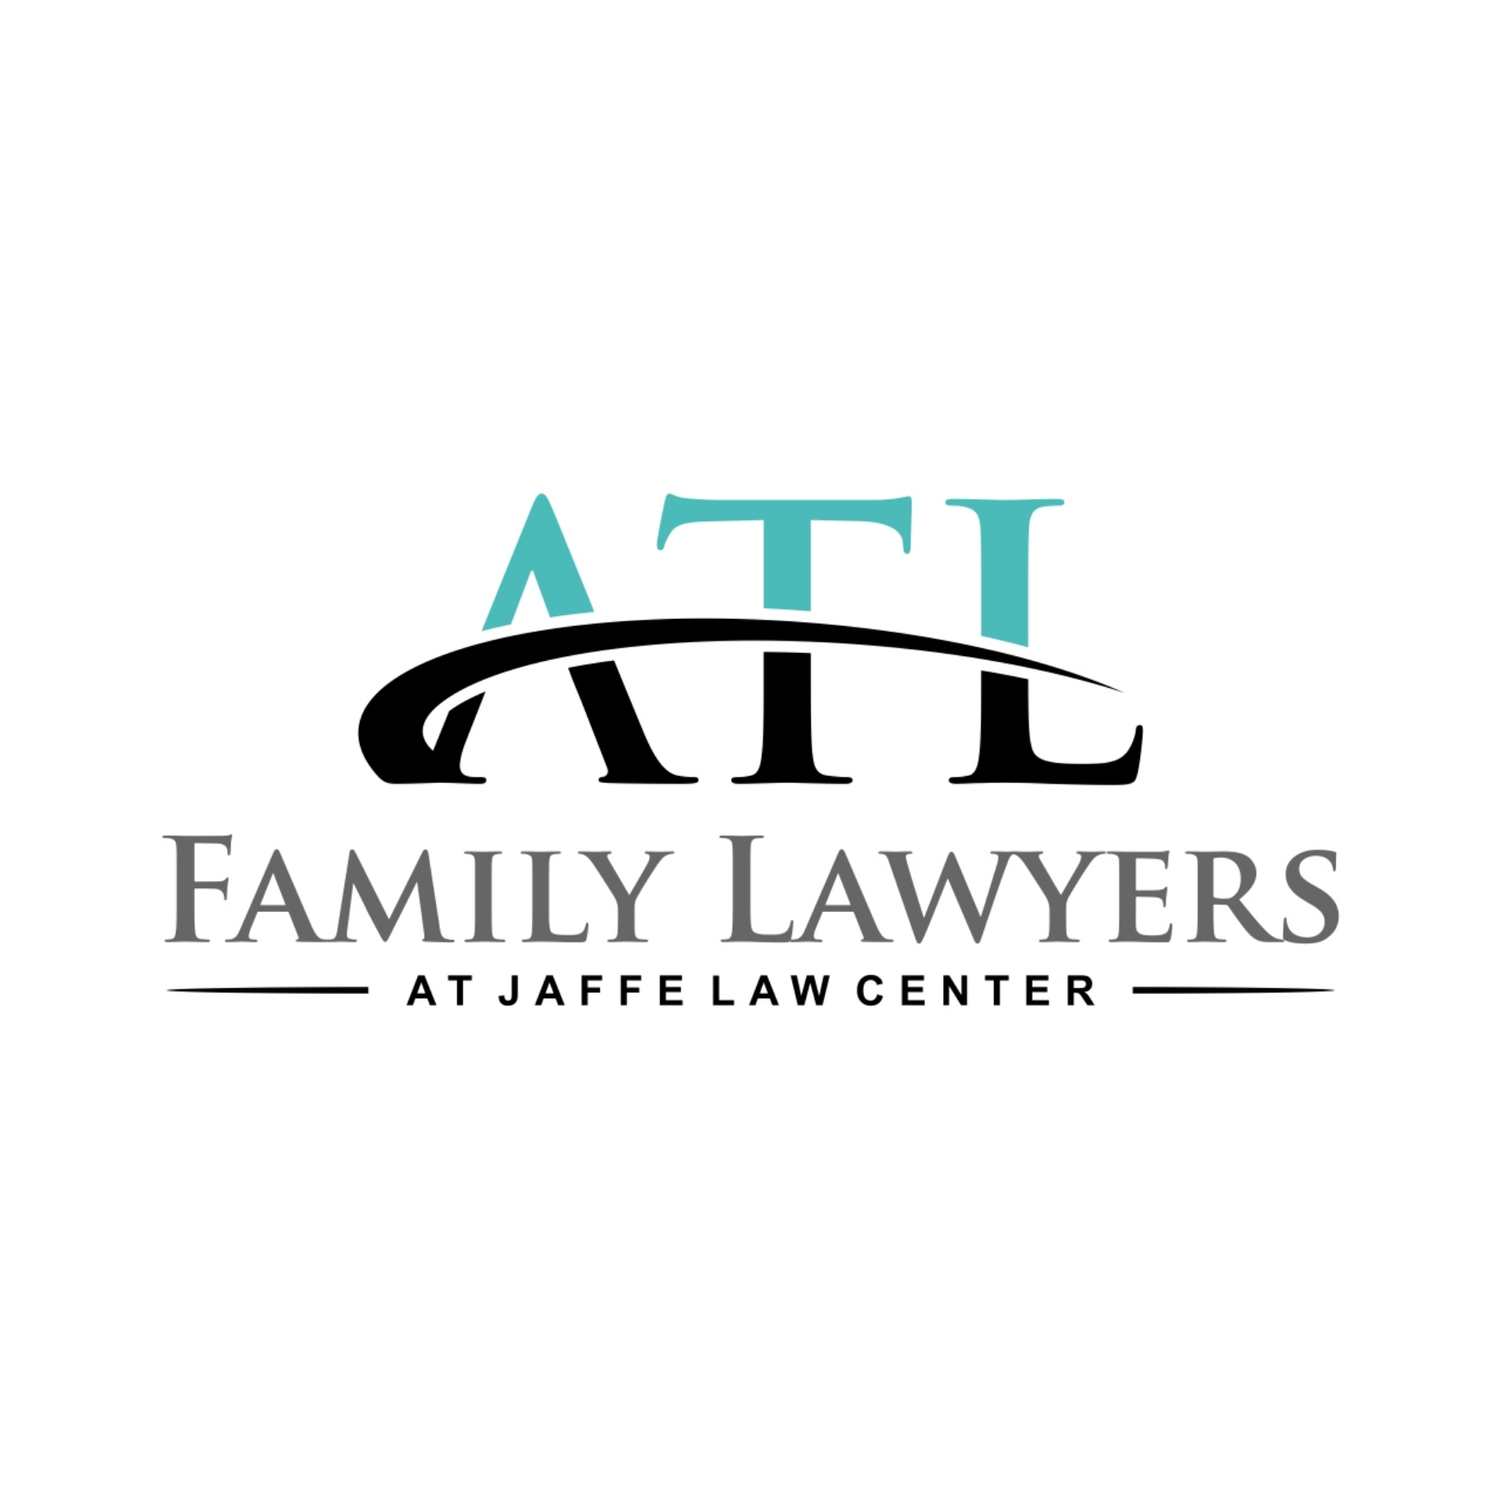 ATL Family Lawyers